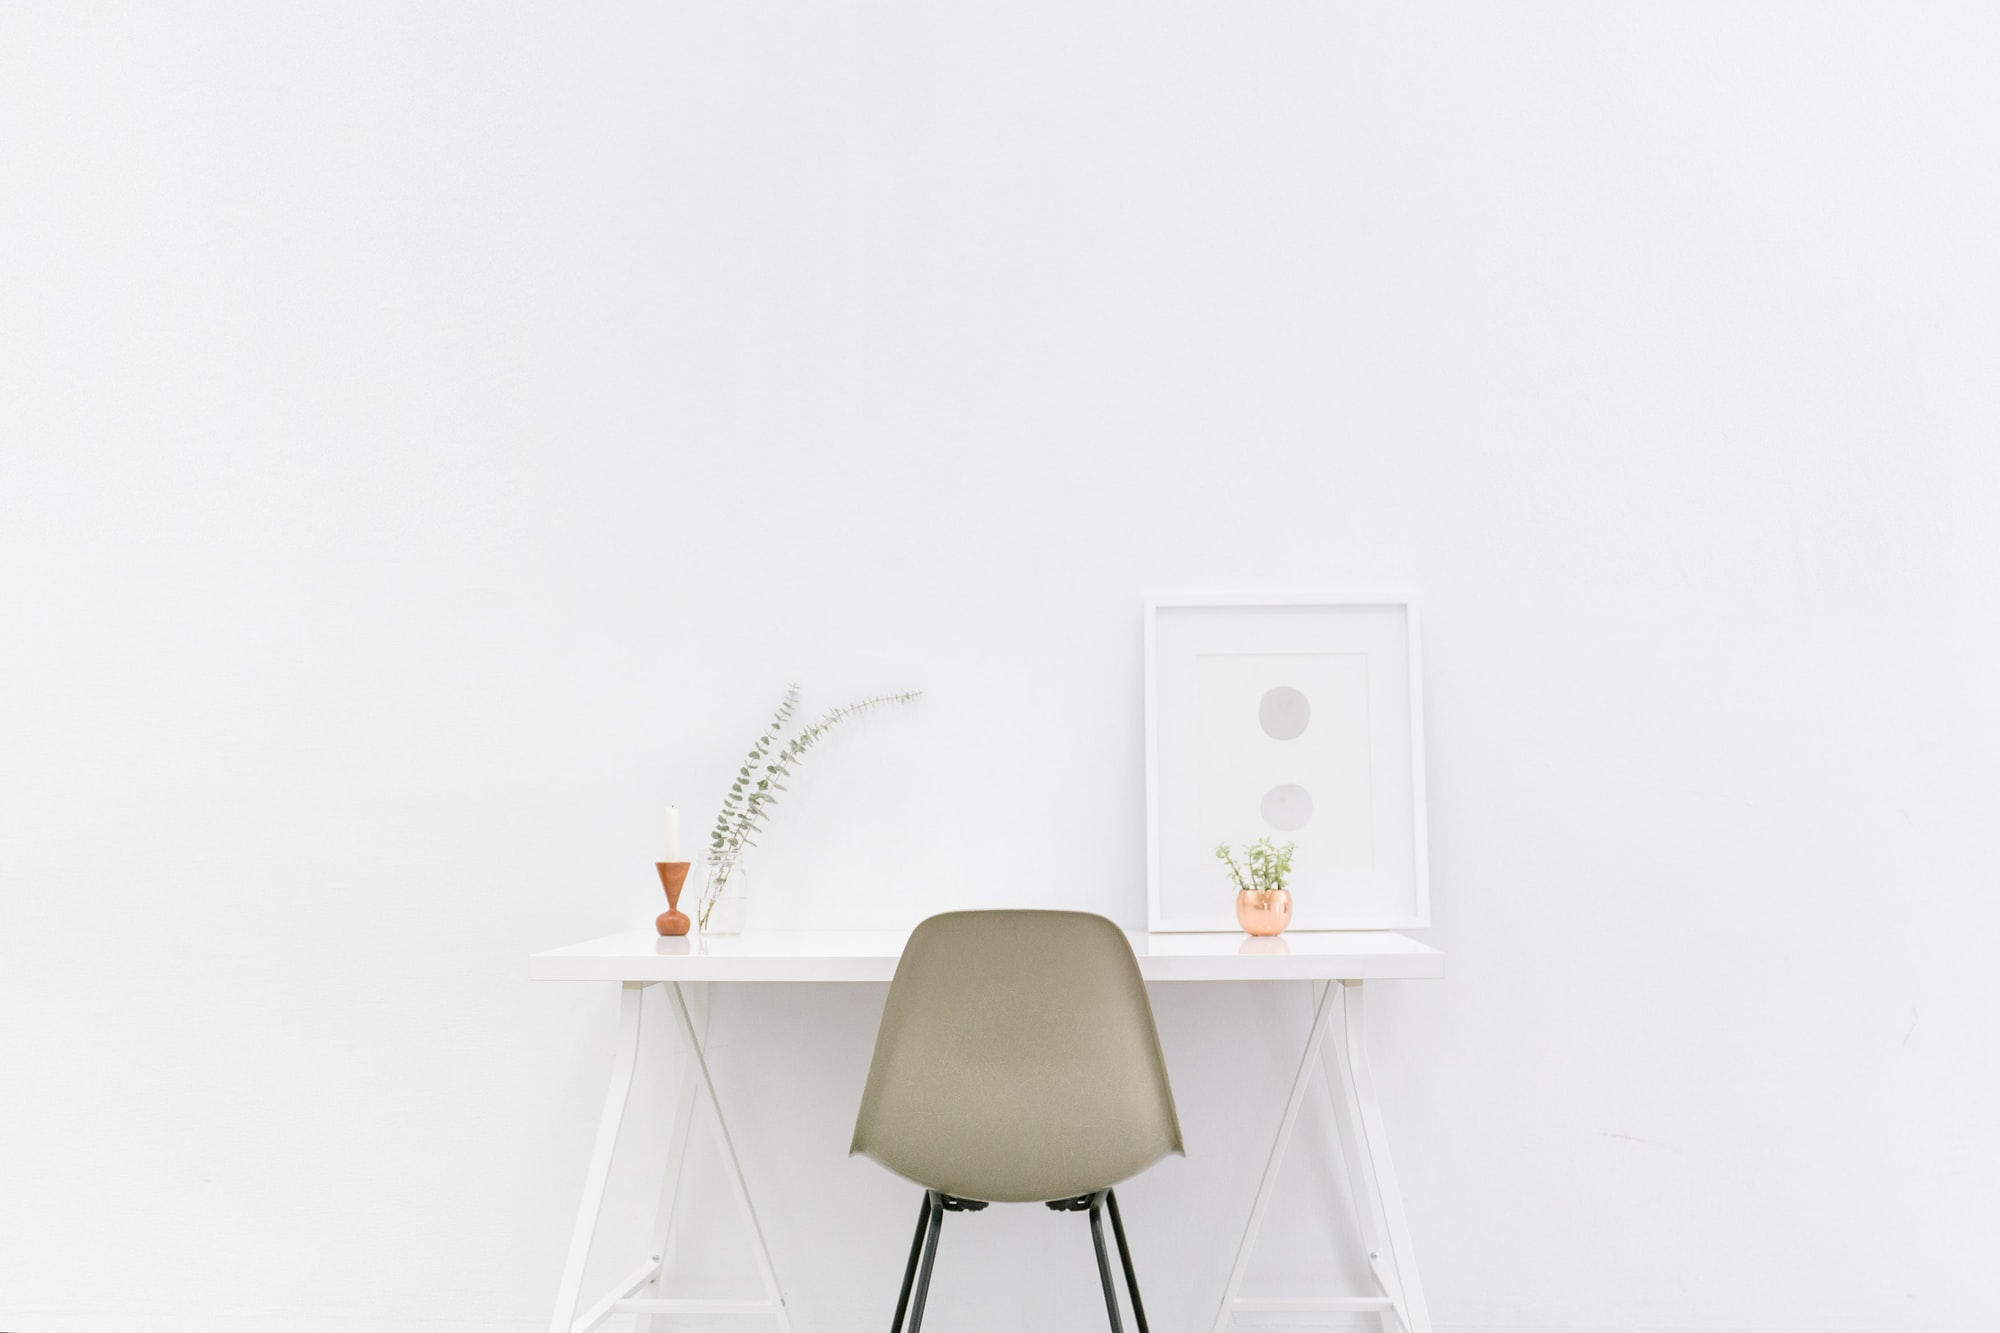 Minimalism: Why should we focus on doing less but better?